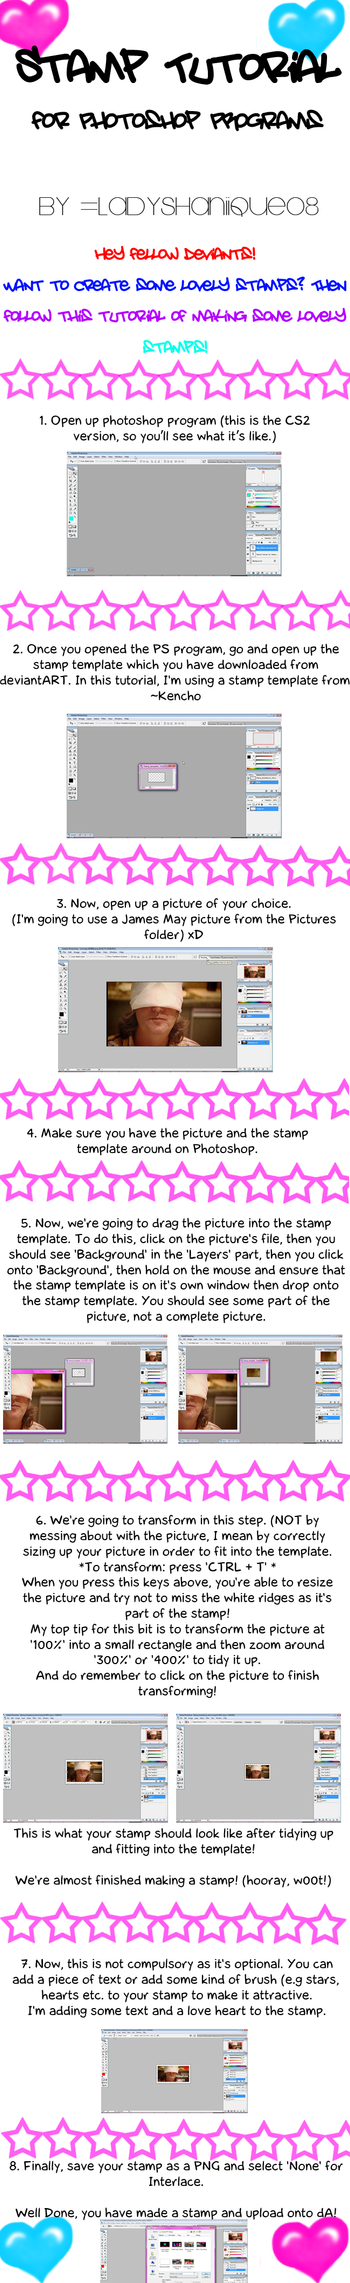 How To Make Stamps Tutorial by ladyshaniique08